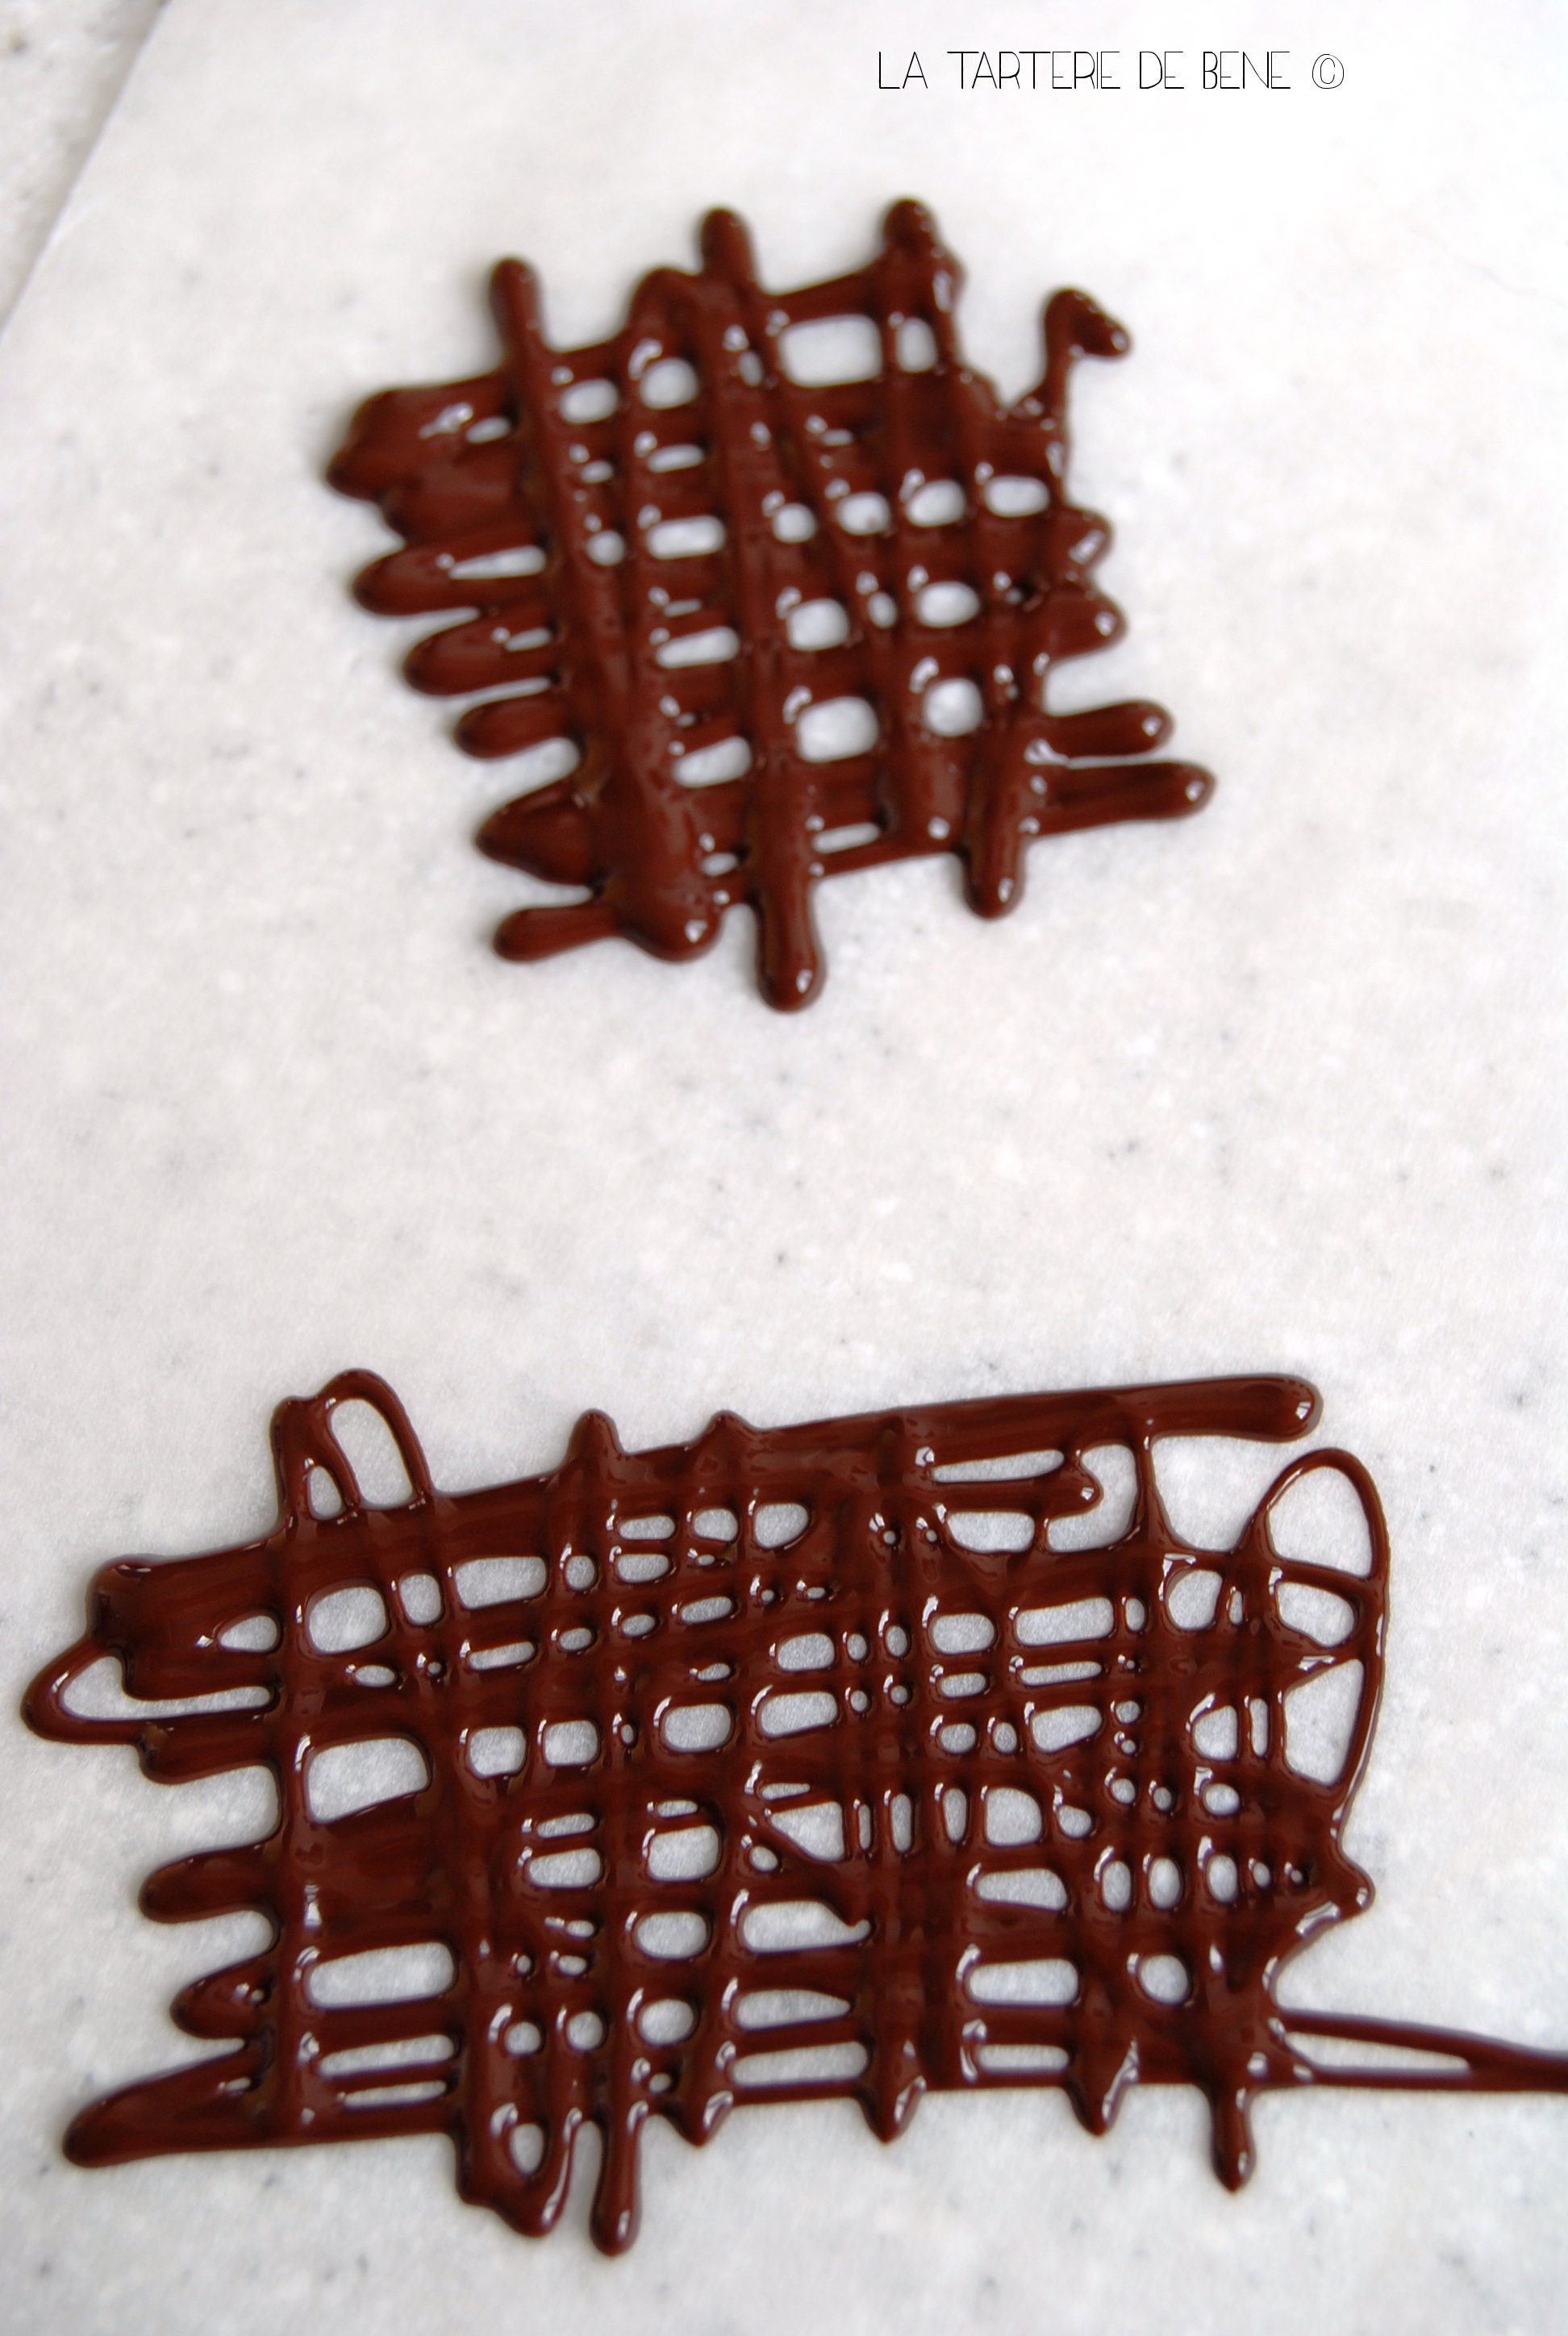 Faire des d cors en chocolat make me green for Decoration maison pour buche de noel